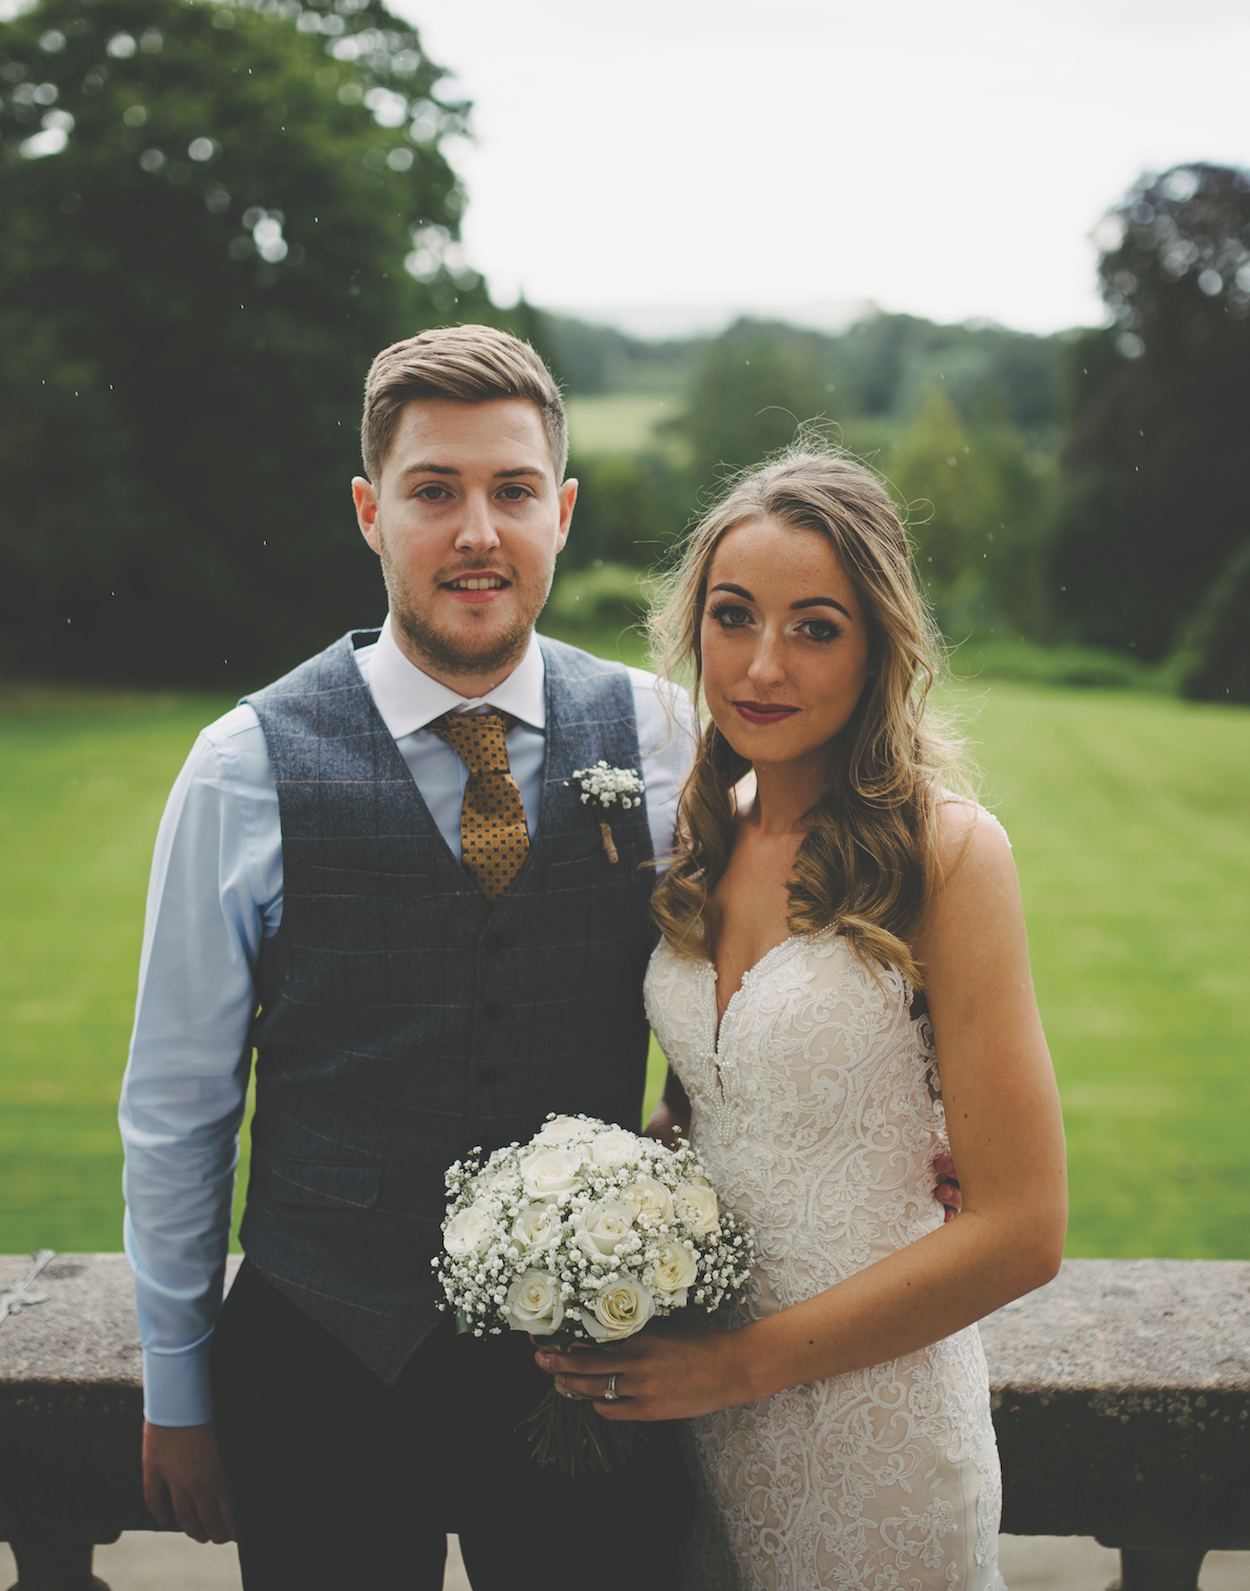 6. fiona_jamieson_wedding_photographer_northern_ireland_inspire_Weddings_2.jpeg